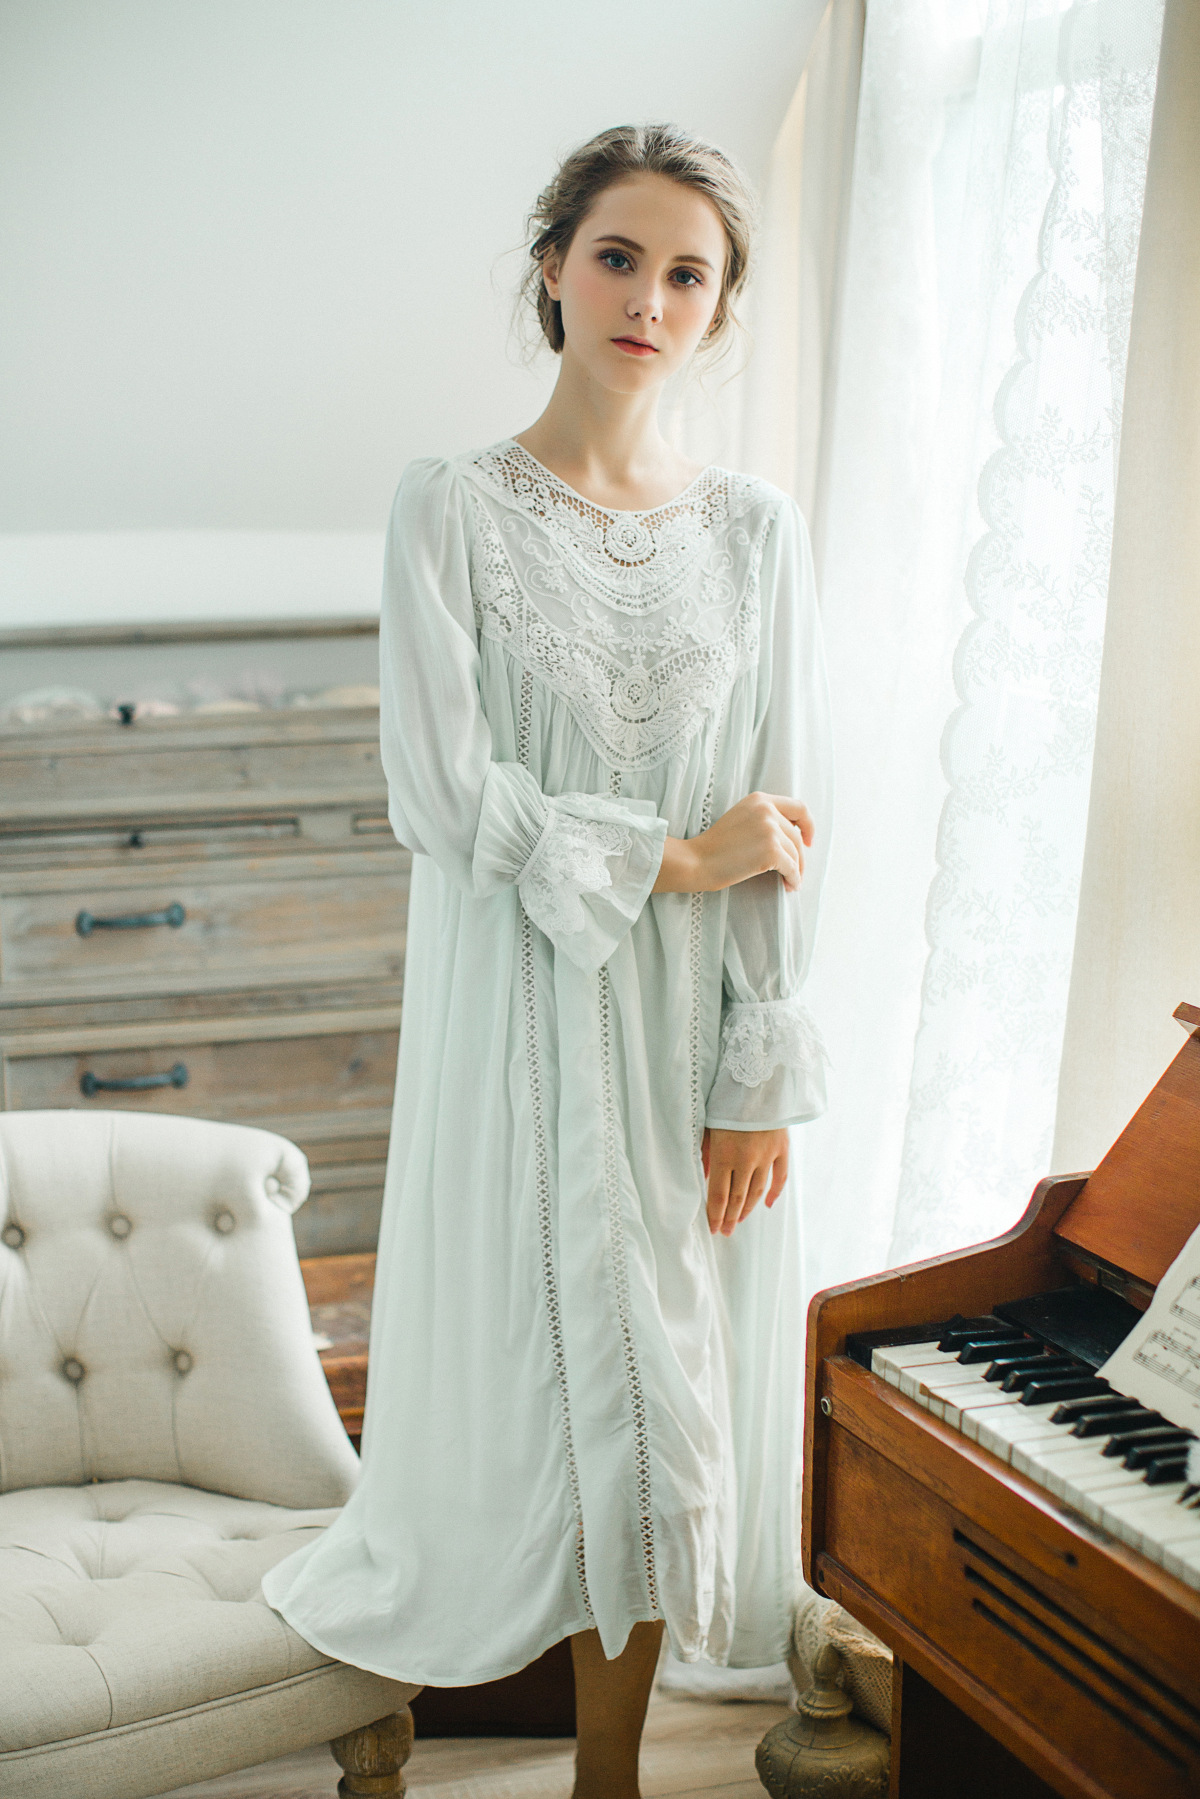 73e6233bb0 New Long Cotton Nightgown Princess Sleep Lounge Pregnant Women Home Dress  Sleepshirts Female Nightdress Vintage Camisao CC590